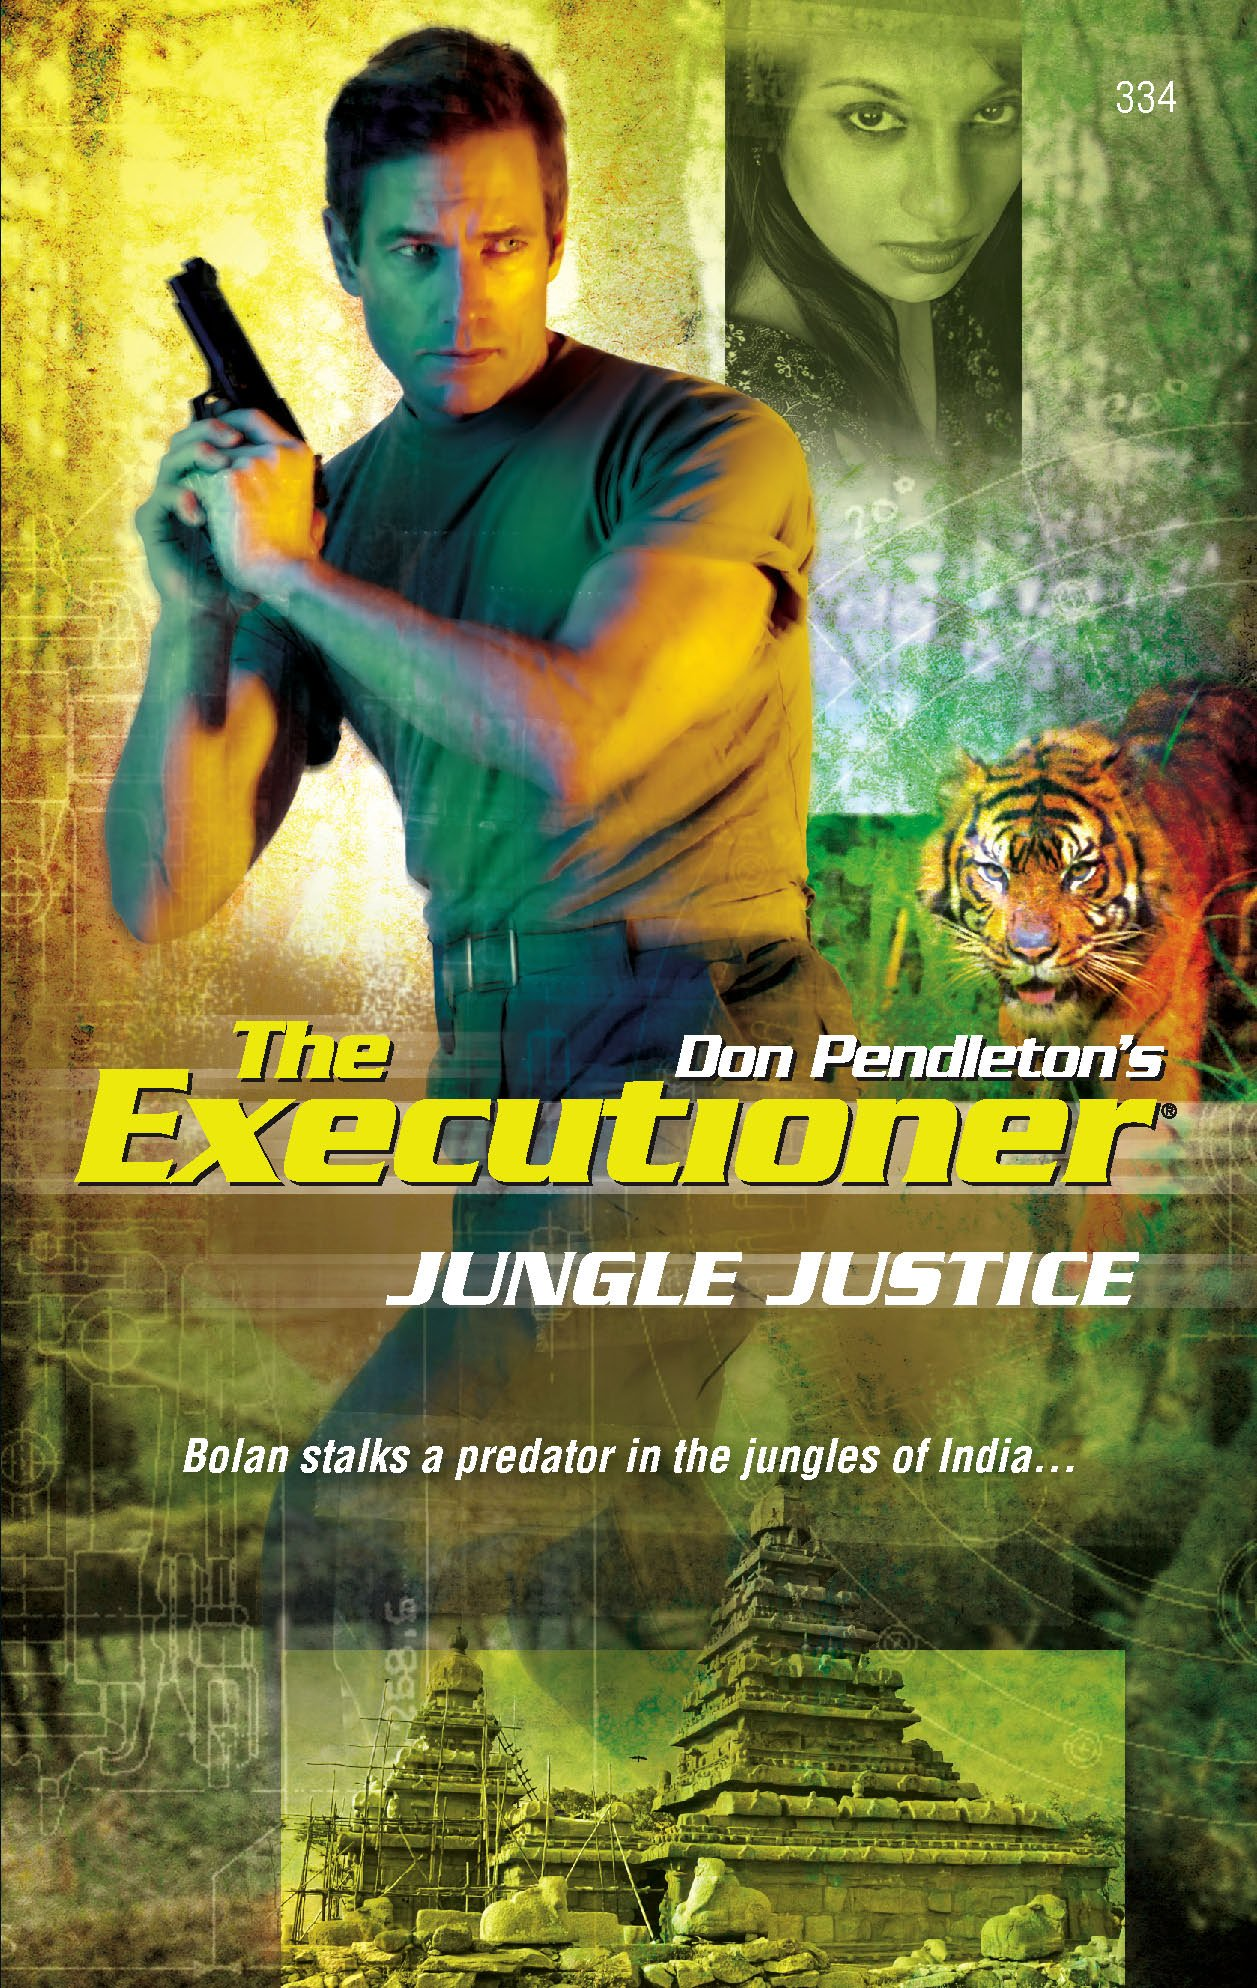 Buy Jungle Justice (The Executioner) Book Online at Low Prices in India | Jungle  Justice (The Executioner) Reviews & Ratings - Amazon.in